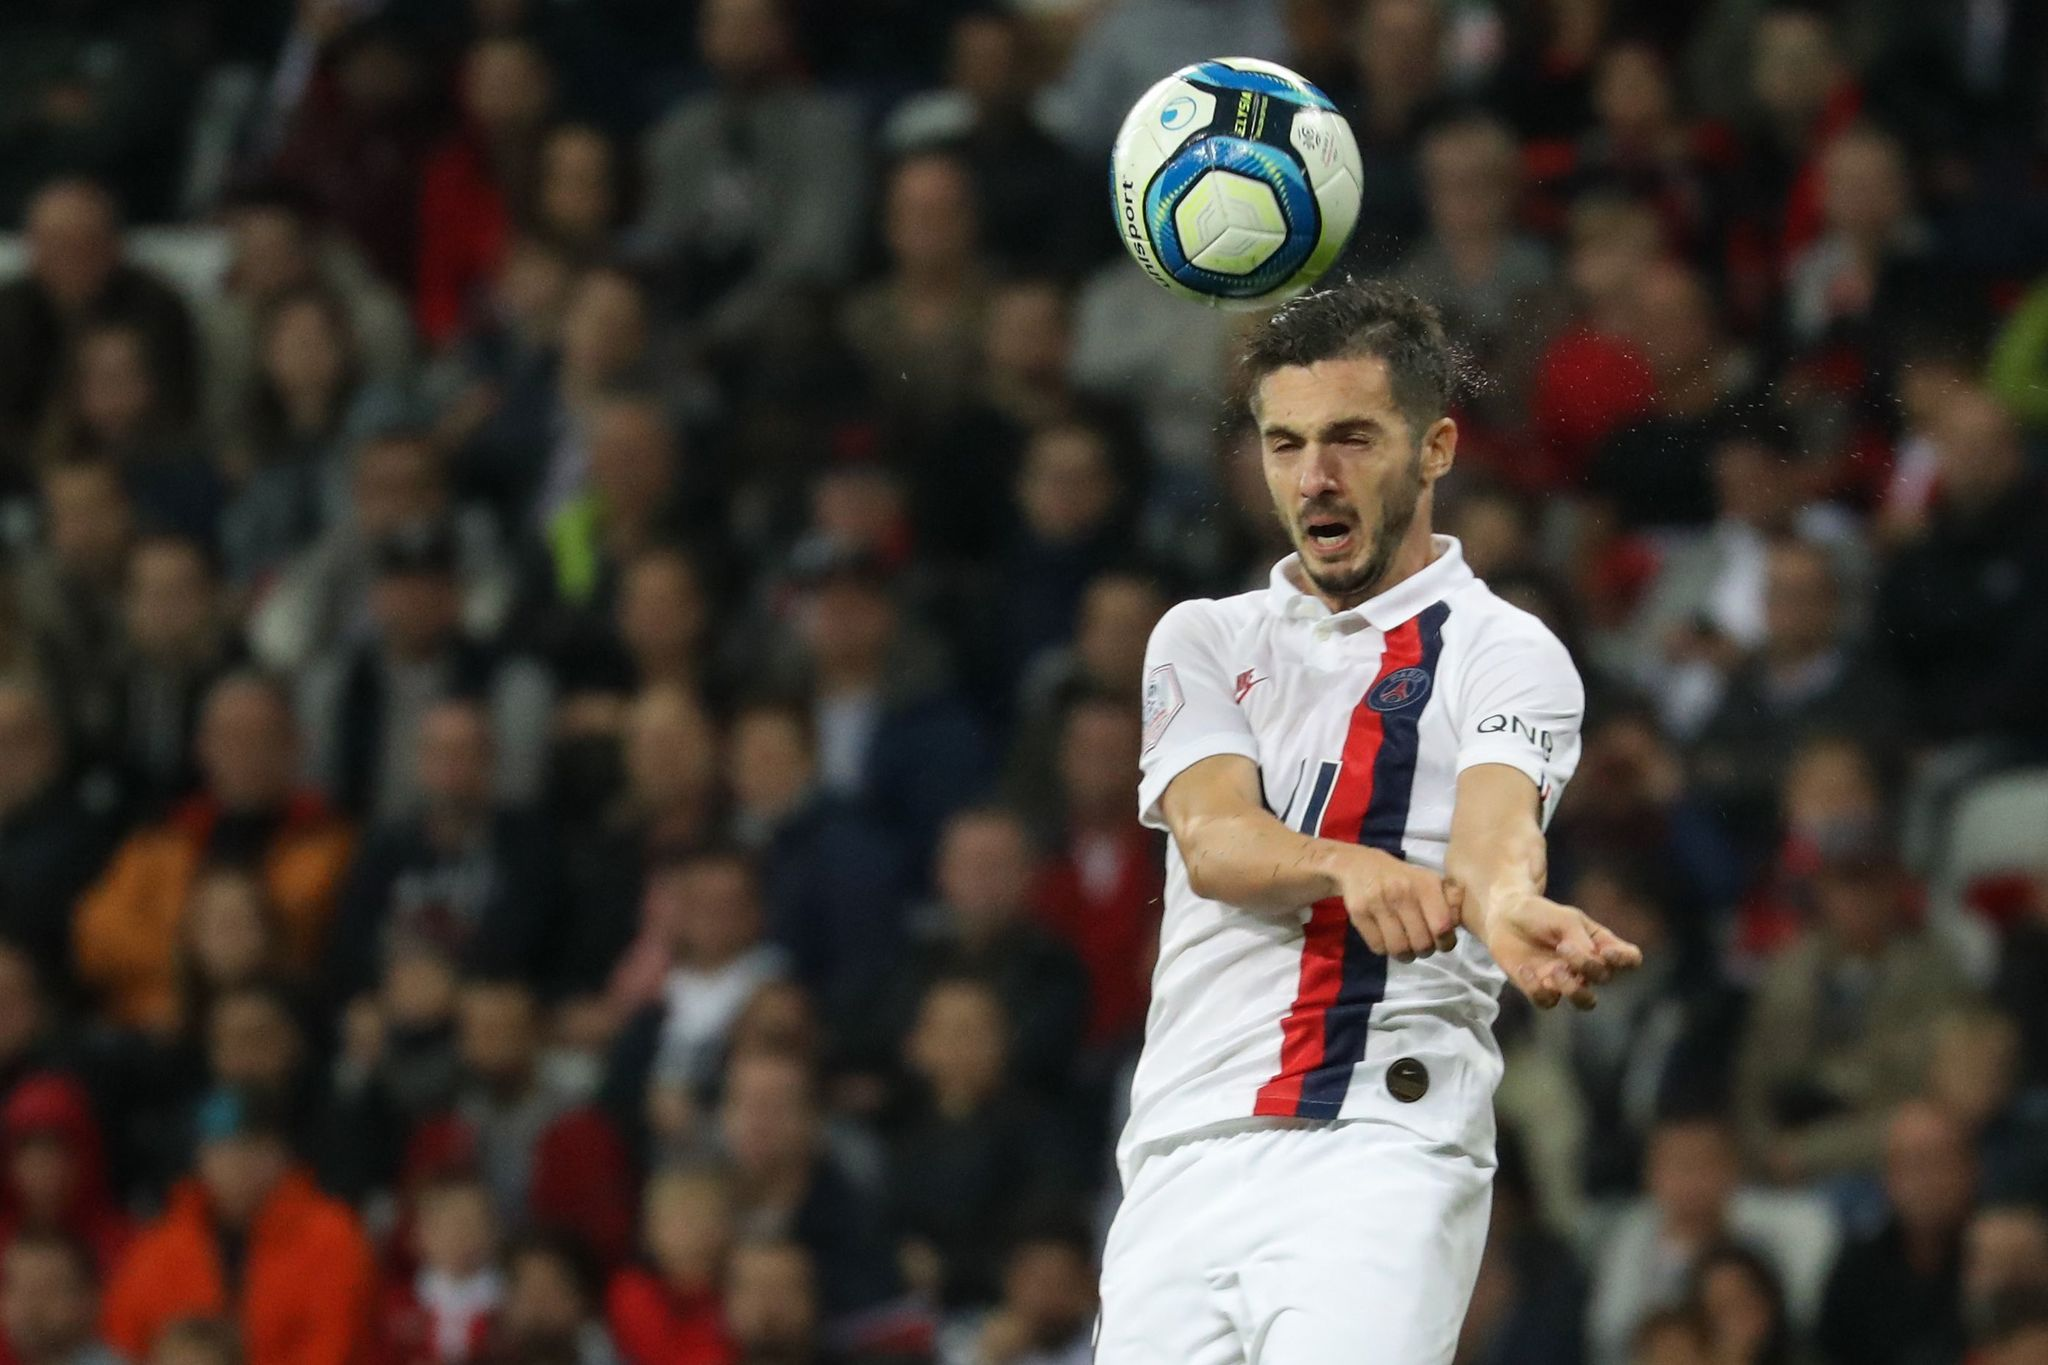 """Paris Saint-Germains Spanish midfielder Pablo <HIT>Sarabia</HIT> heads the ball during the French L1 football match between OGC Nice (OGCN) and Paris Saint-Germain (PSG) at """"Allianz Riviera"""" stadium in Nice, southern France, on October 18, 2019. (Photo by Valery HACHE / AFP)"""